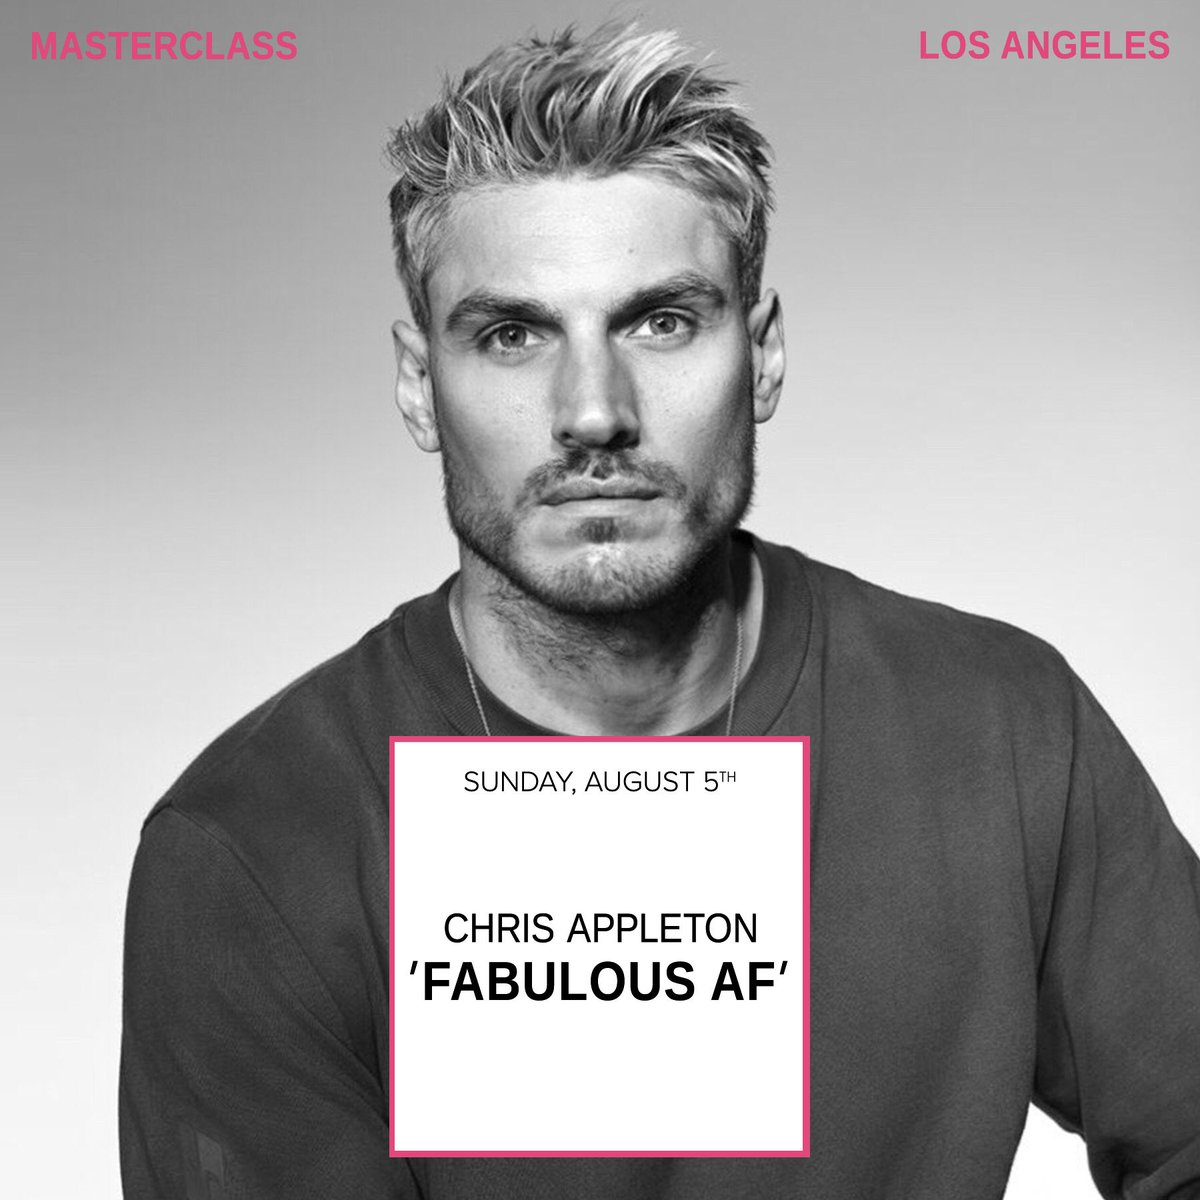 So excited for @ChrisAppleton1 Who's going? https://t.co/3cm6Z0kEcY https://t.co/IWYpVm8Aqm